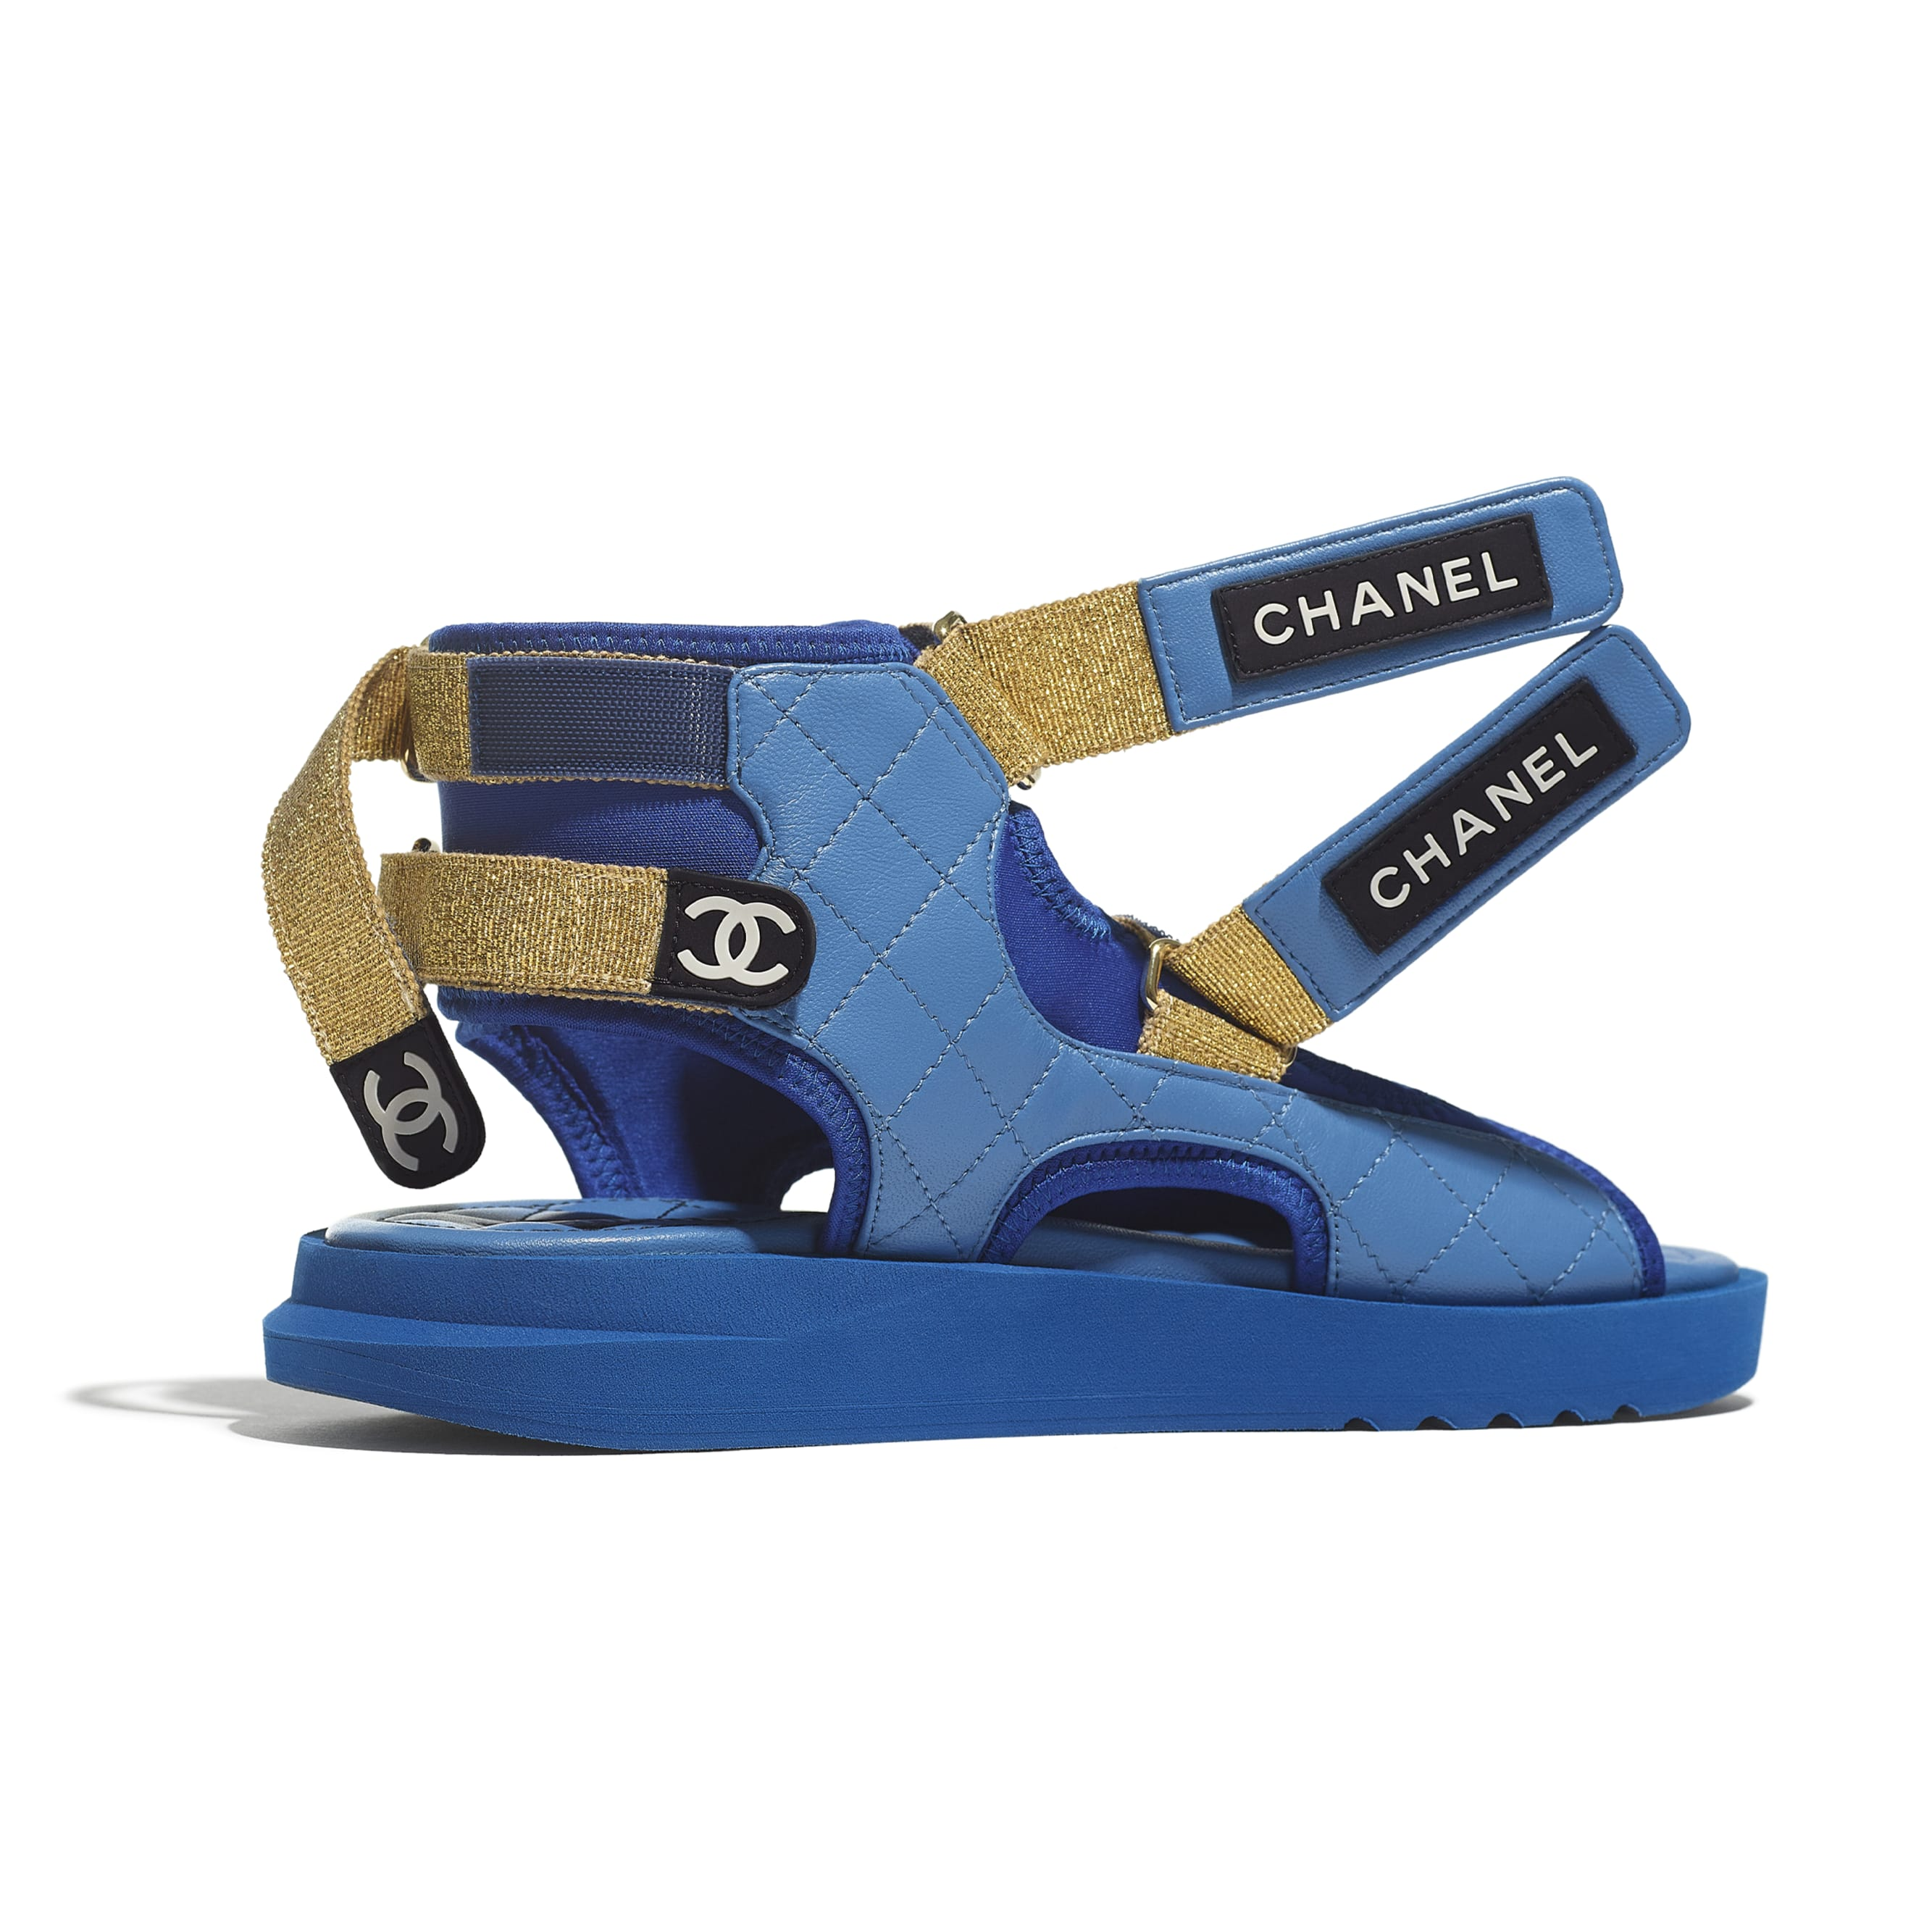 Sandals - Blue, Dark Blue & Black - Goatskin, Fabric & TPU - CHANEL - Extra view - see standard sized version